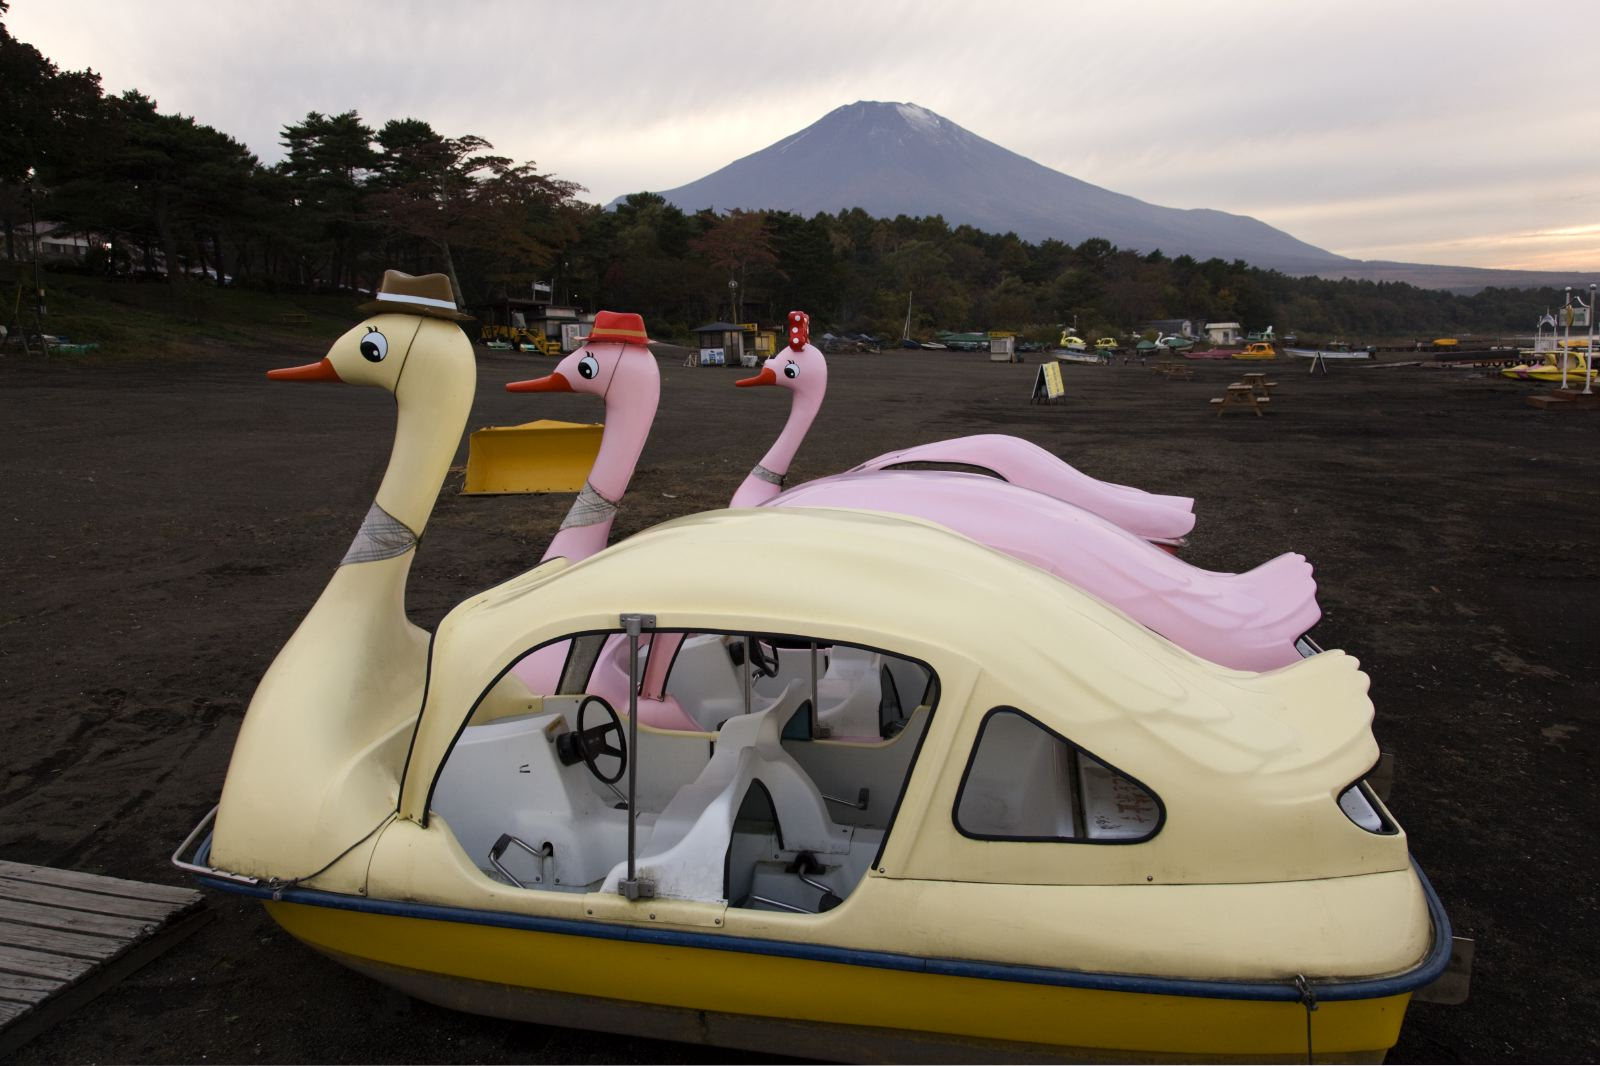 JAPAN. LAKE YAMANAKAKO. October 2009. Swan pleasure boats with view of Mount Fuji - 16x12inches £600 - Edition of 6 + 2AP's - 20x24inches £1000 - Edition of 4 + 2AP's